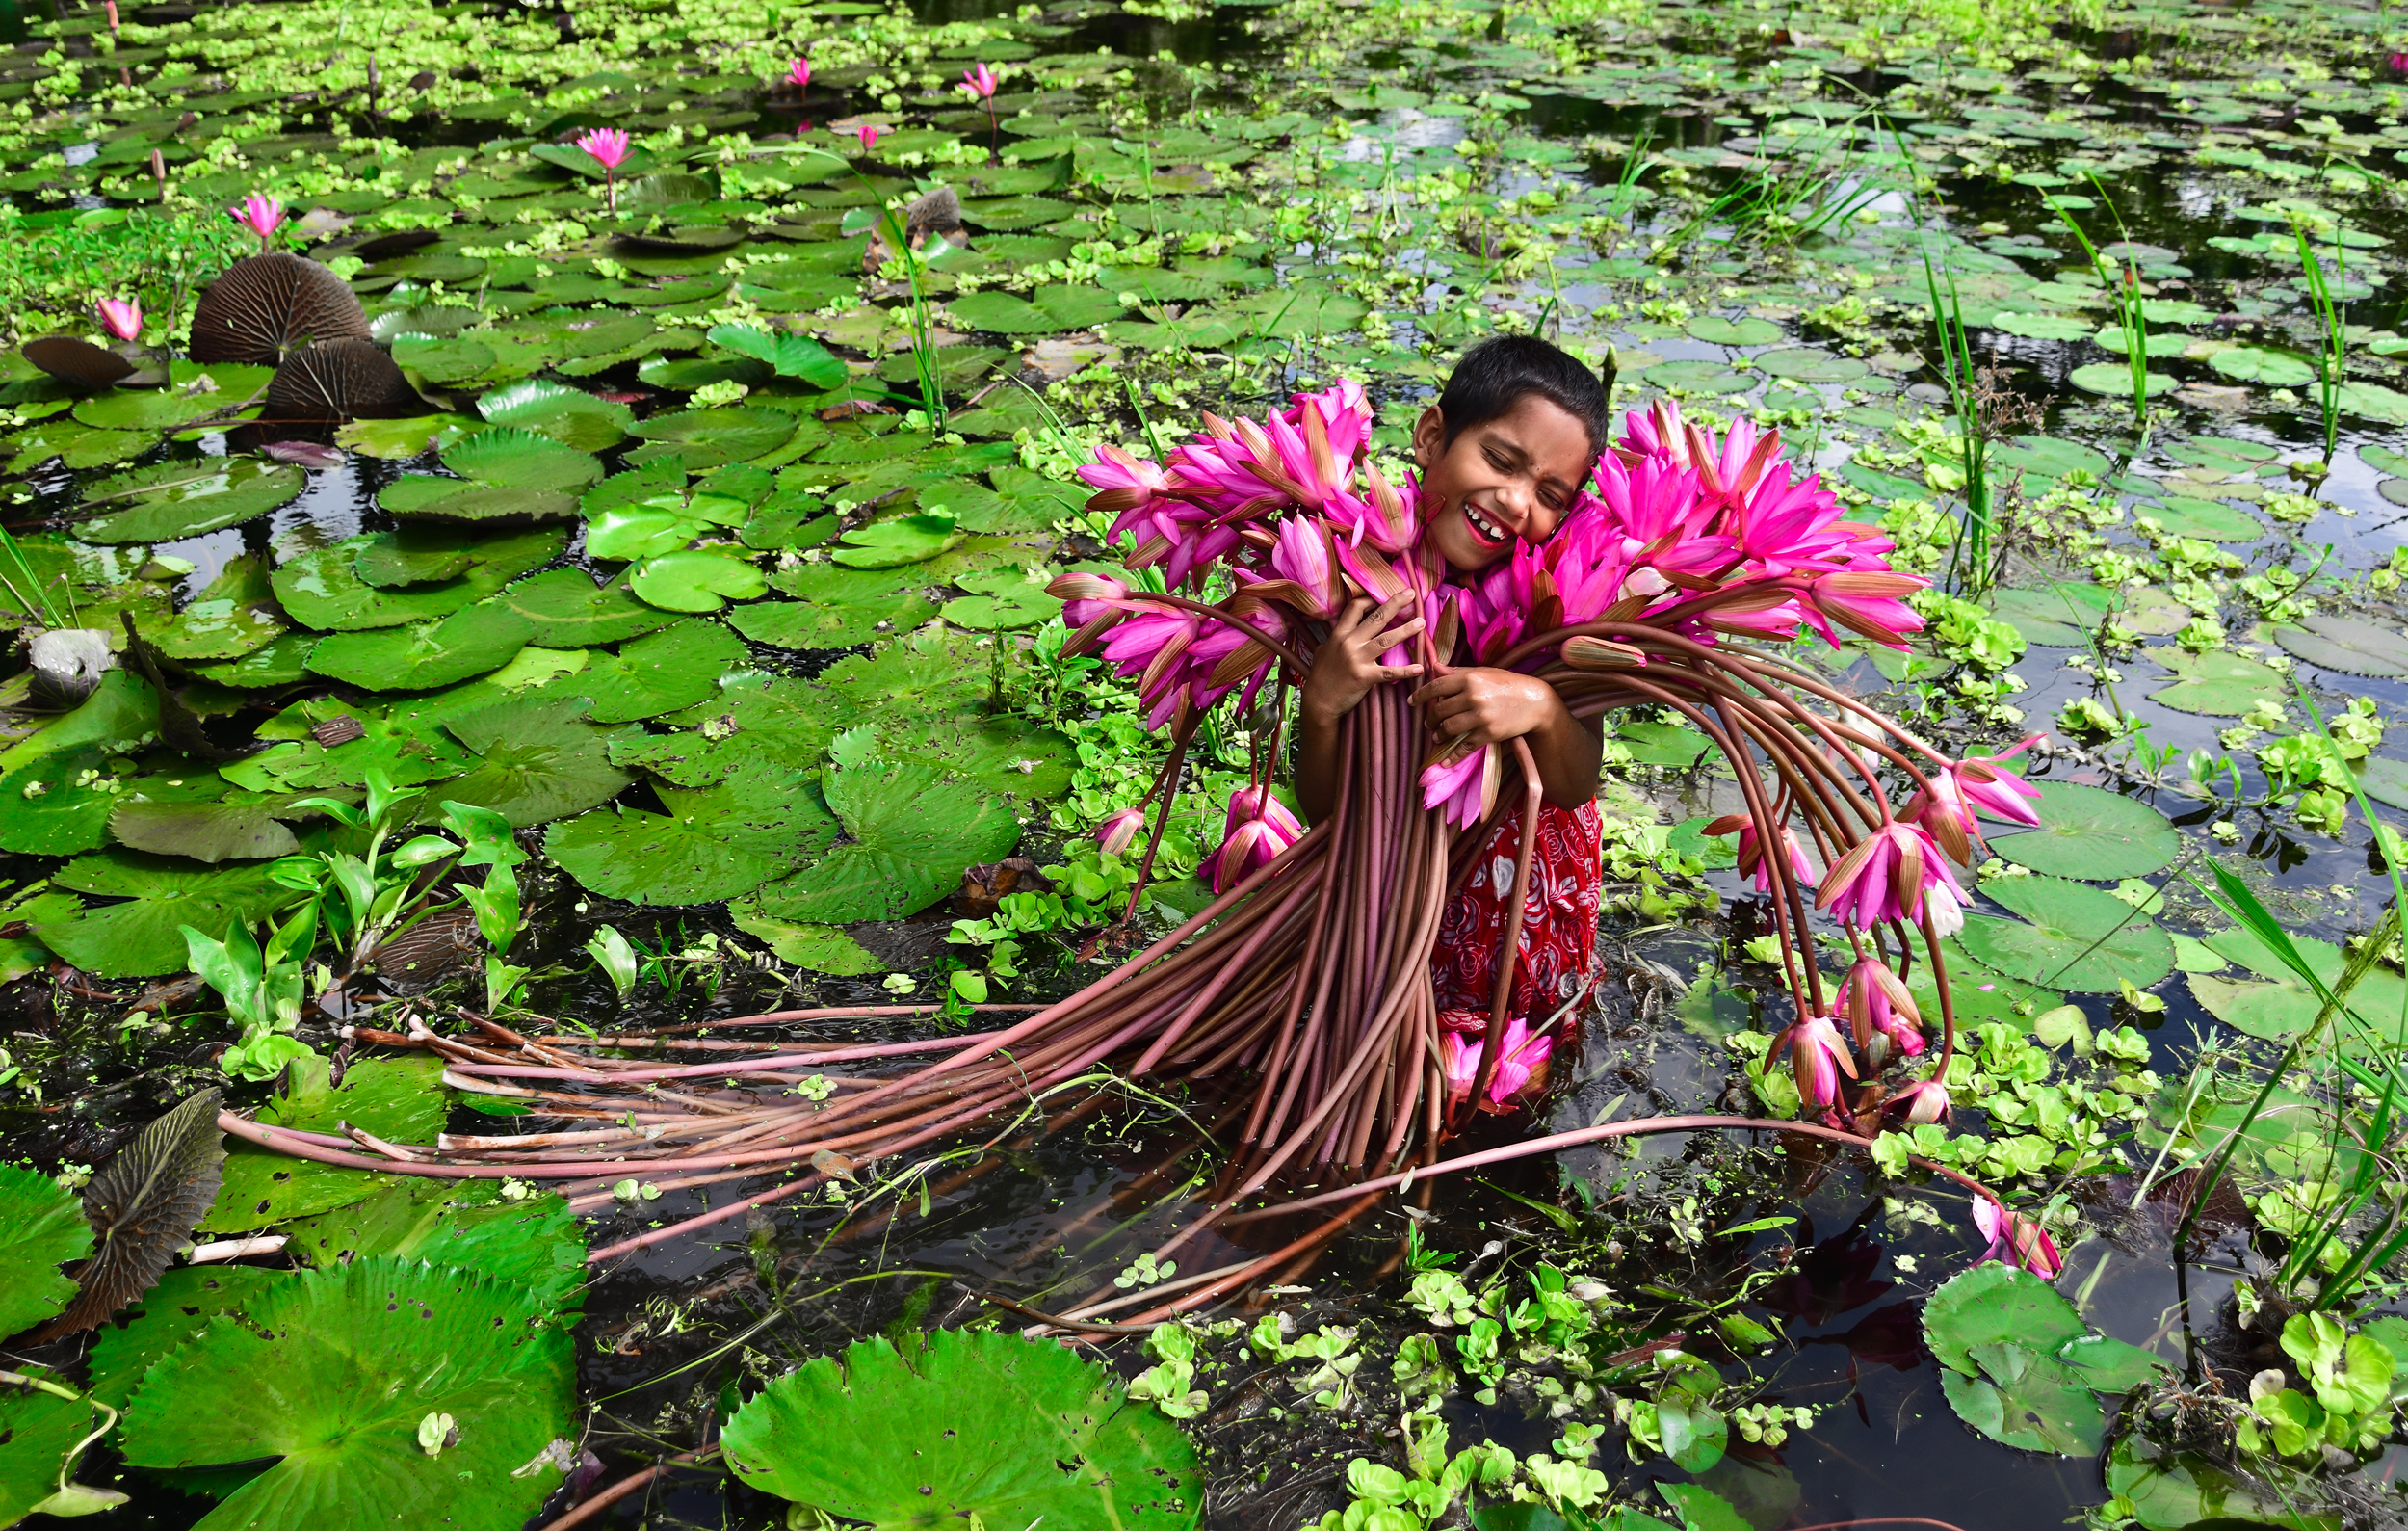 Girl With Water Lily in Bangladesh